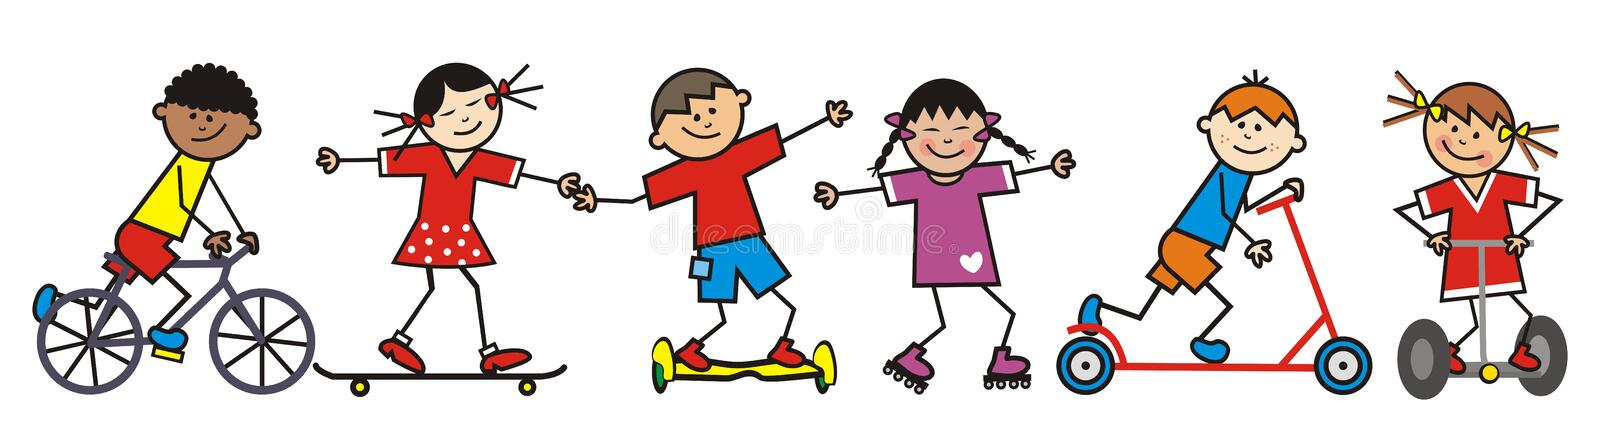 Happy kids as riders of different means transport, eps. Happy kids, riders, funny vector illustration.  Group of children on different means of transport stock illustration